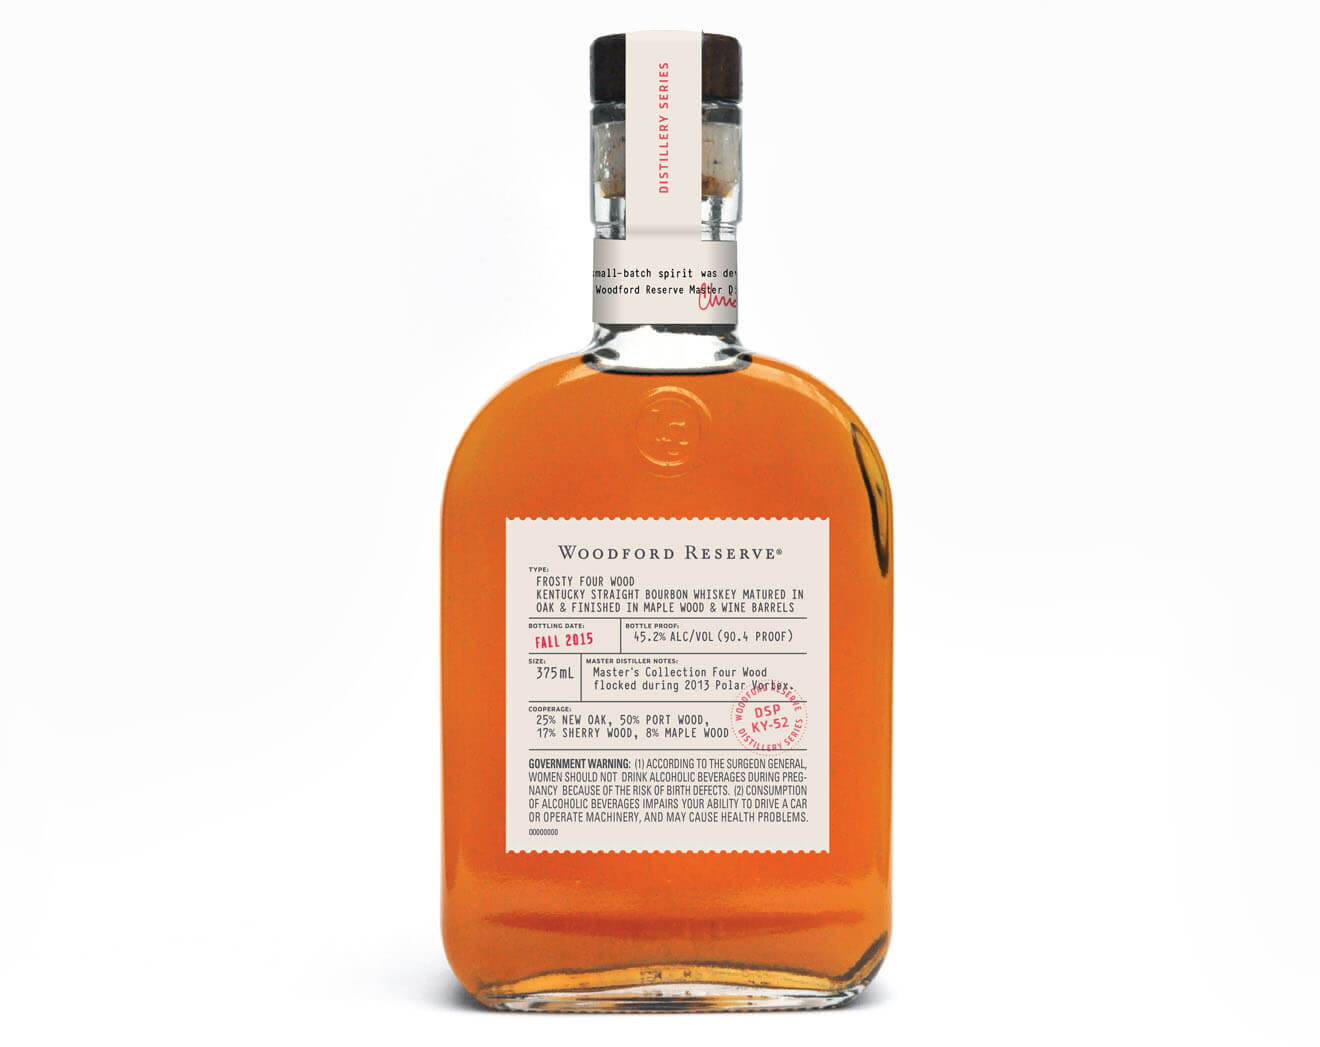 Woodford Reserve 'Frosty Four Wood', featured brands